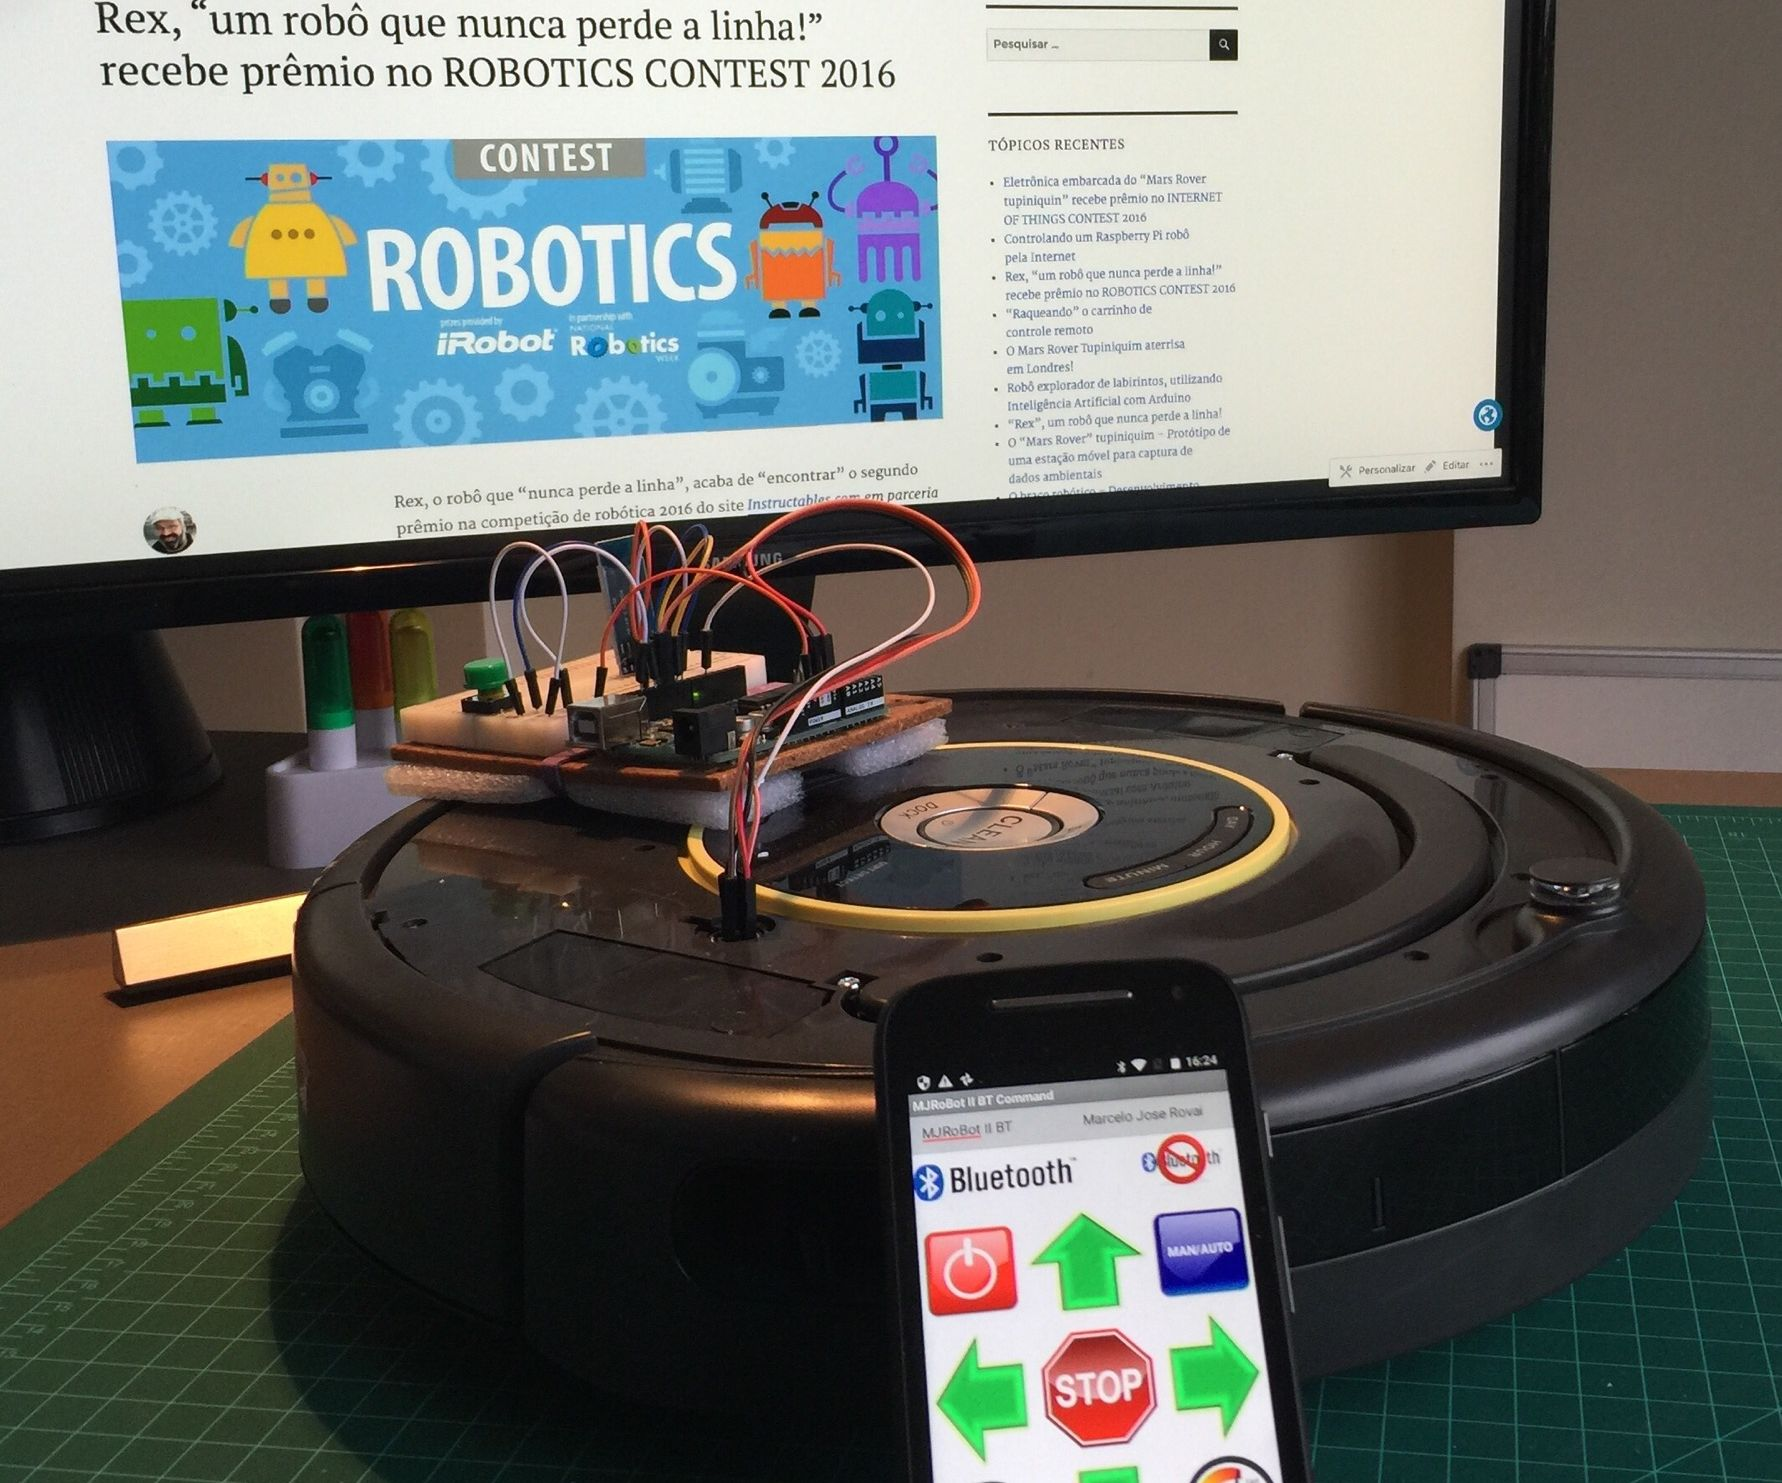 Controlling a Roomba robot with Arduino and Android